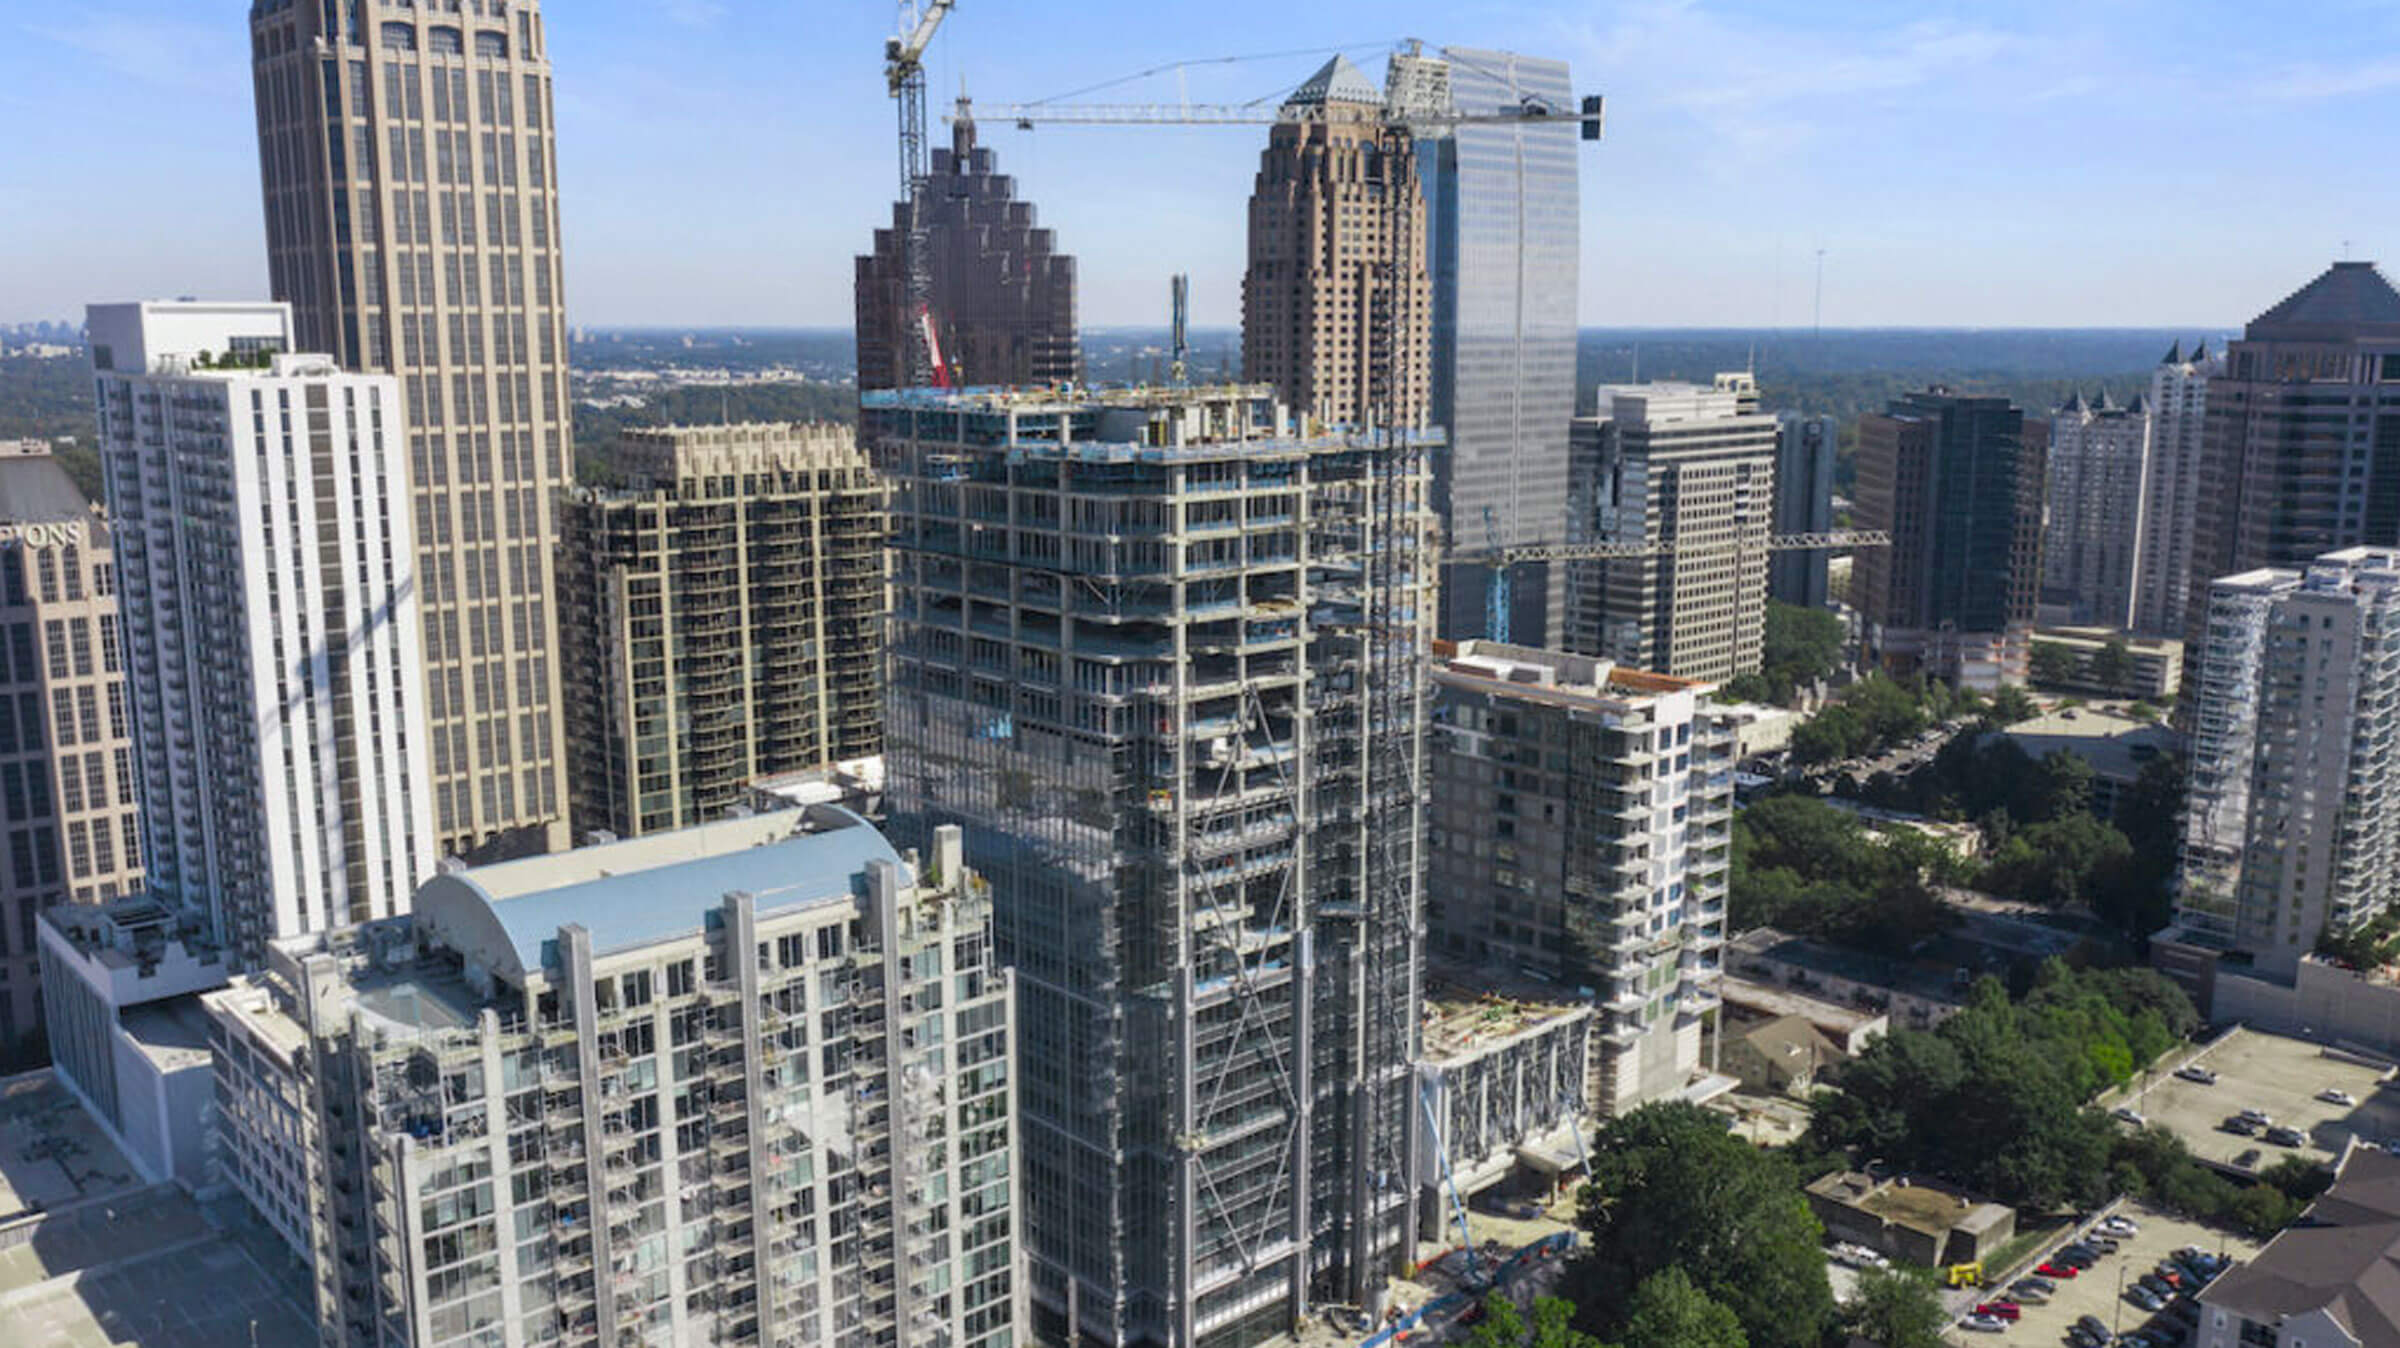 40 West 12th Tops Out, Opens Presentation Gallery